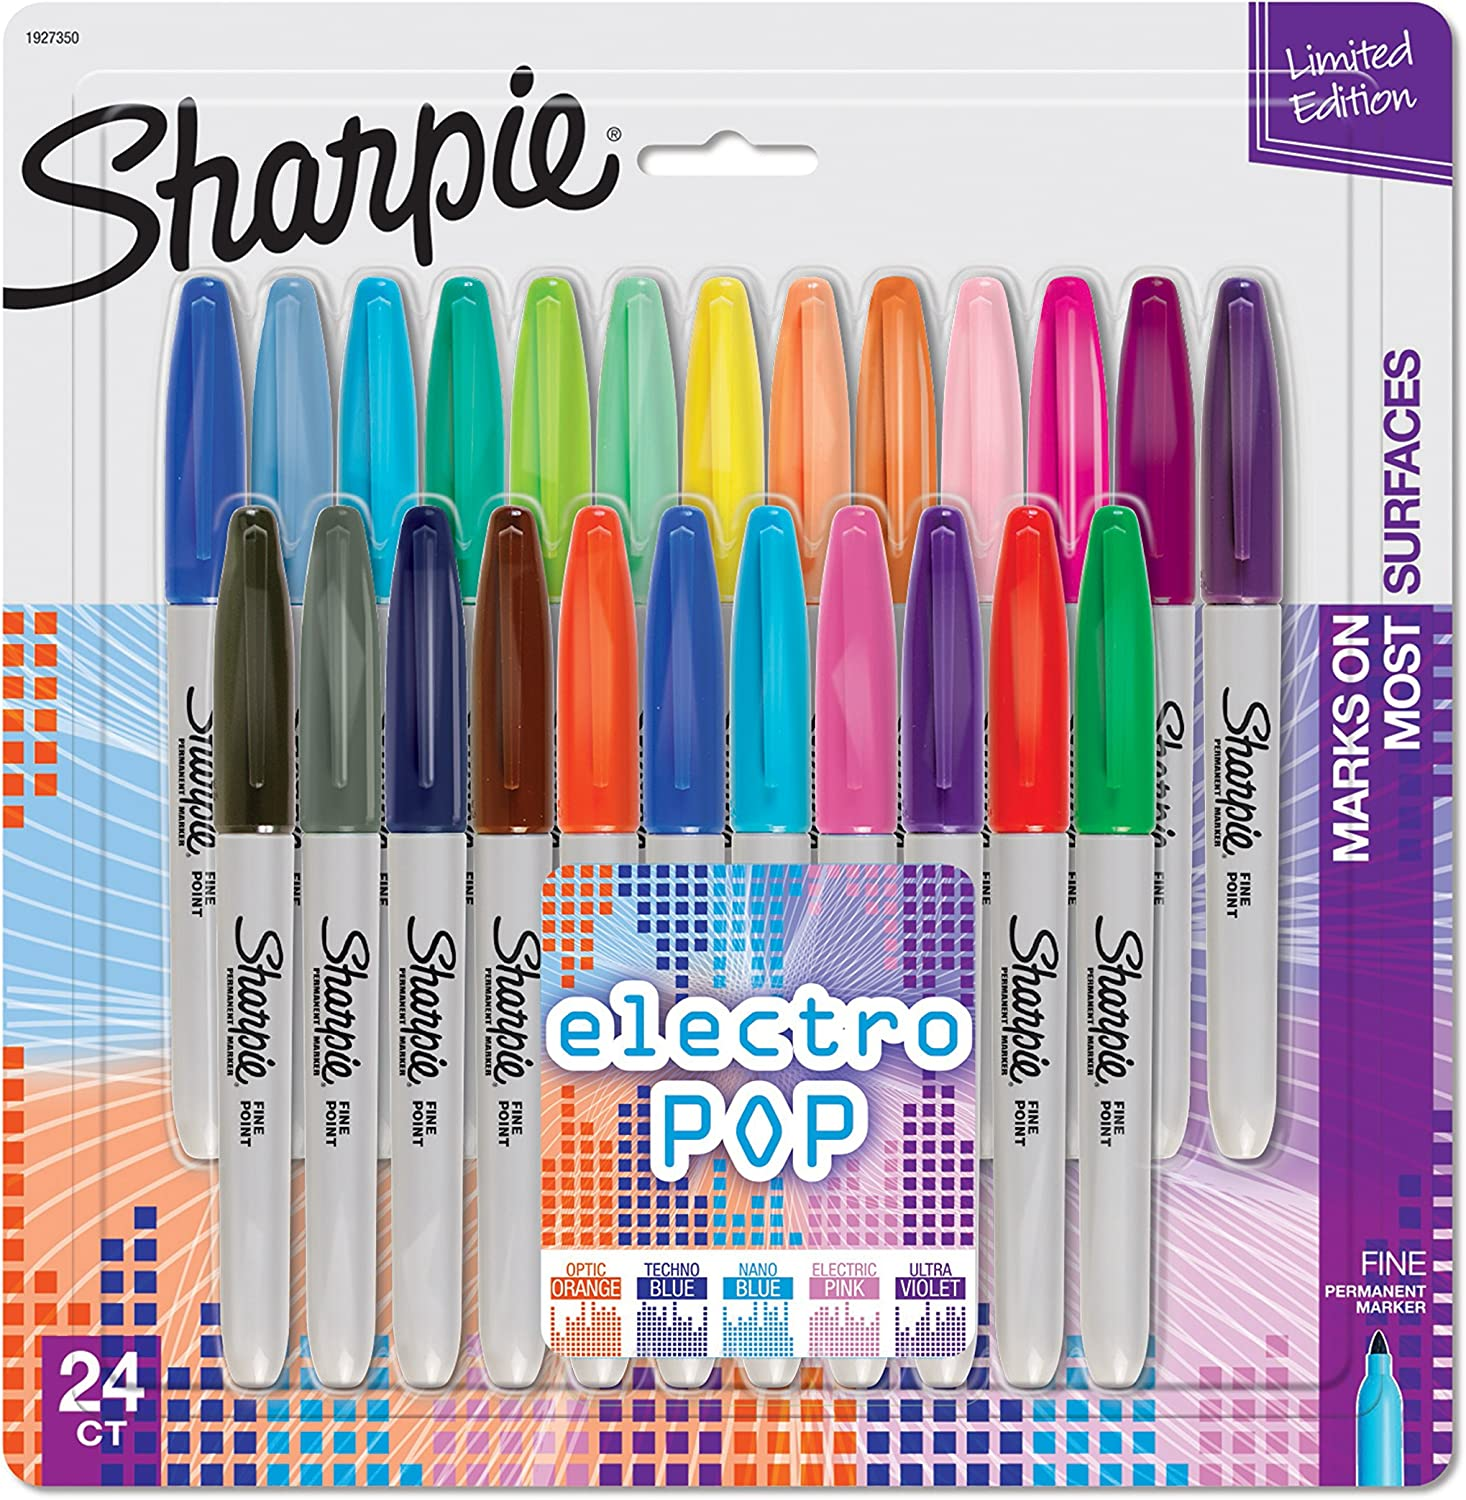 Pack of sharpies.